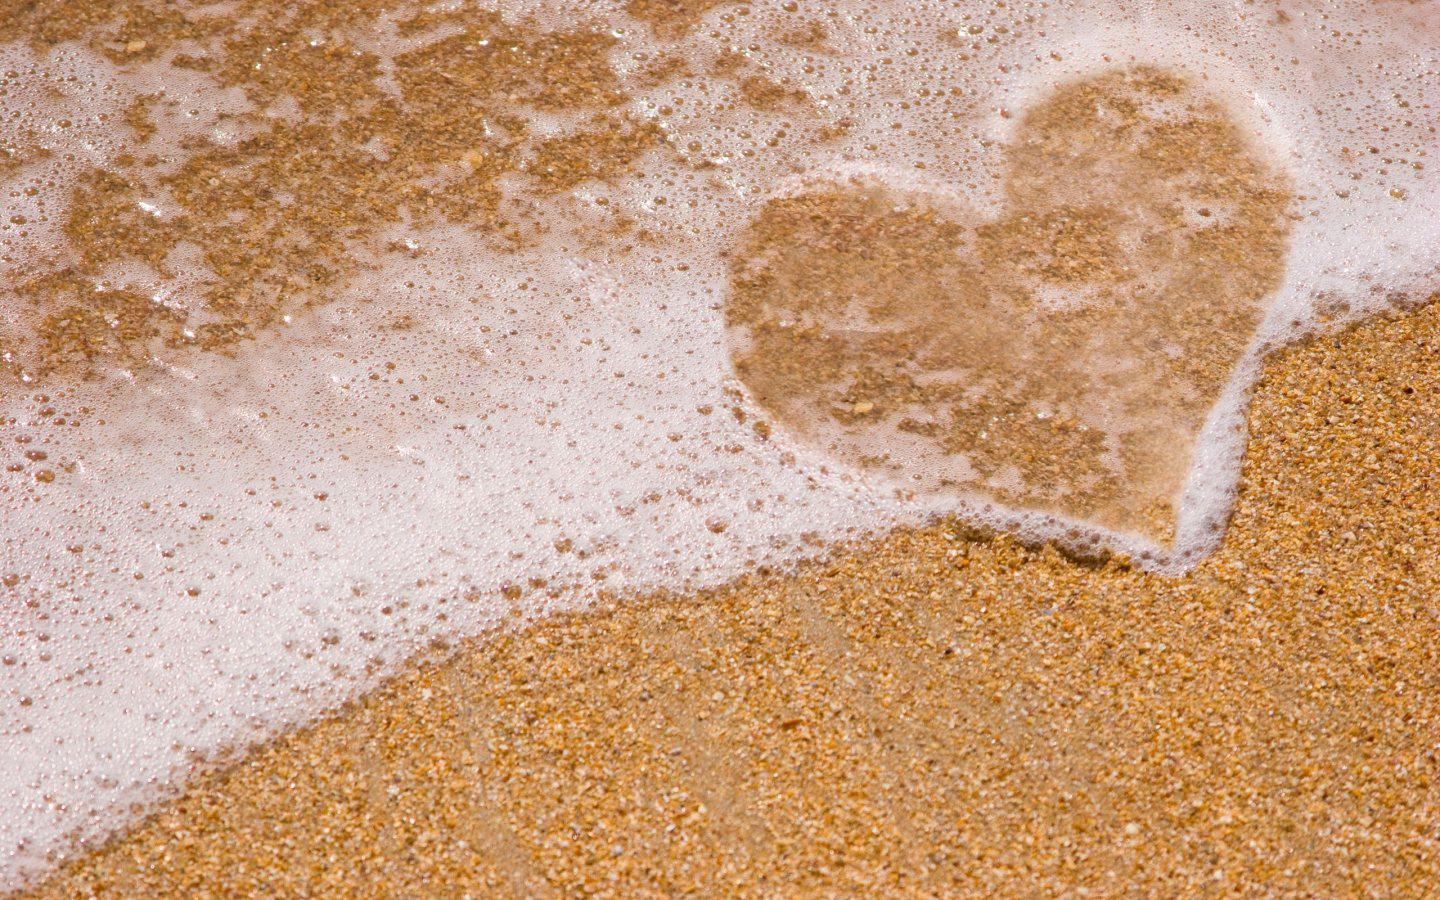 Lonely Heart From Beach Sand HD Wallpaper | Best Love HD ...